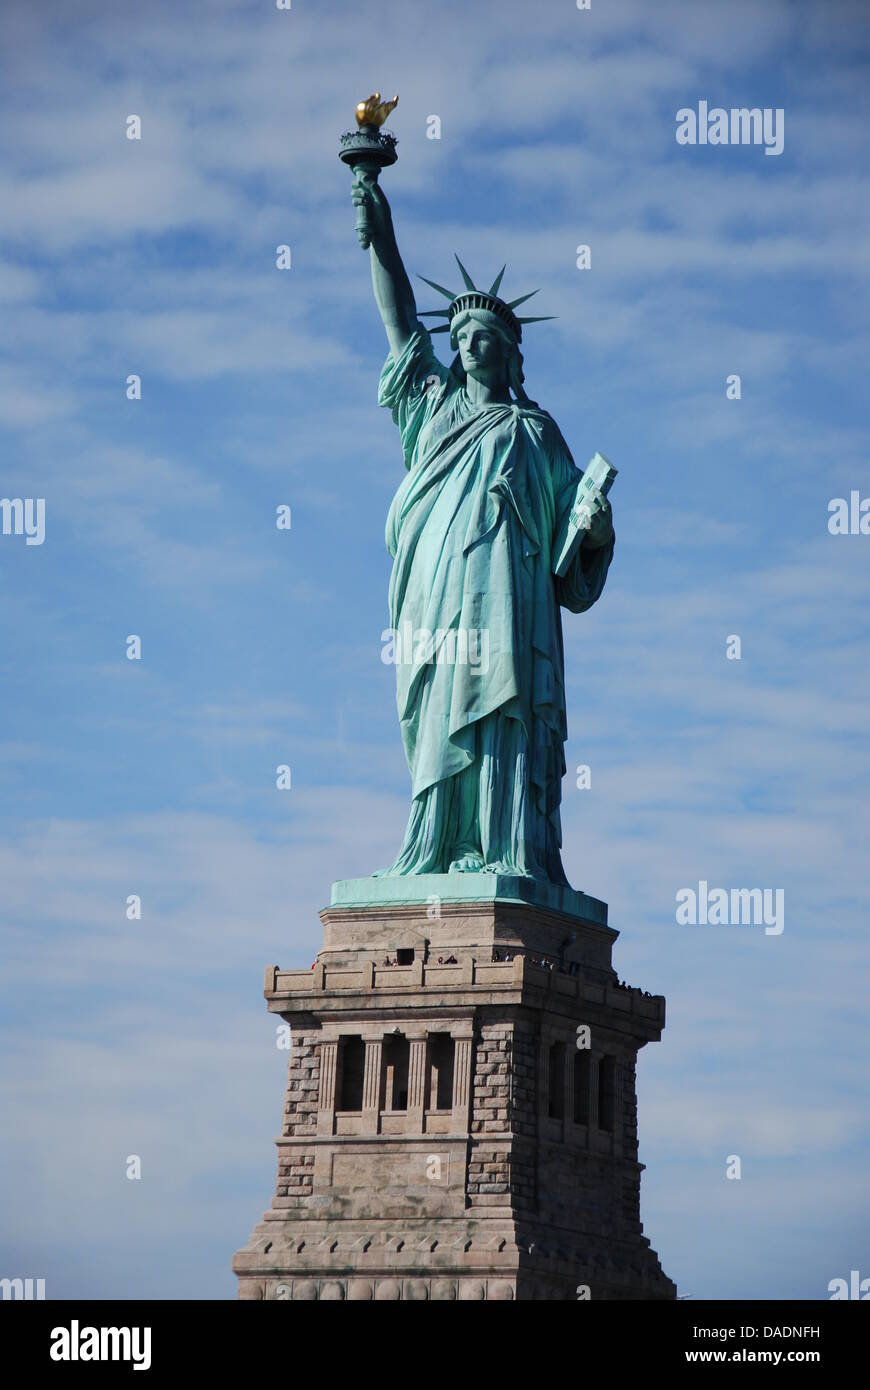 The Statue Of Liberty Stands In The Harbour Of New York City